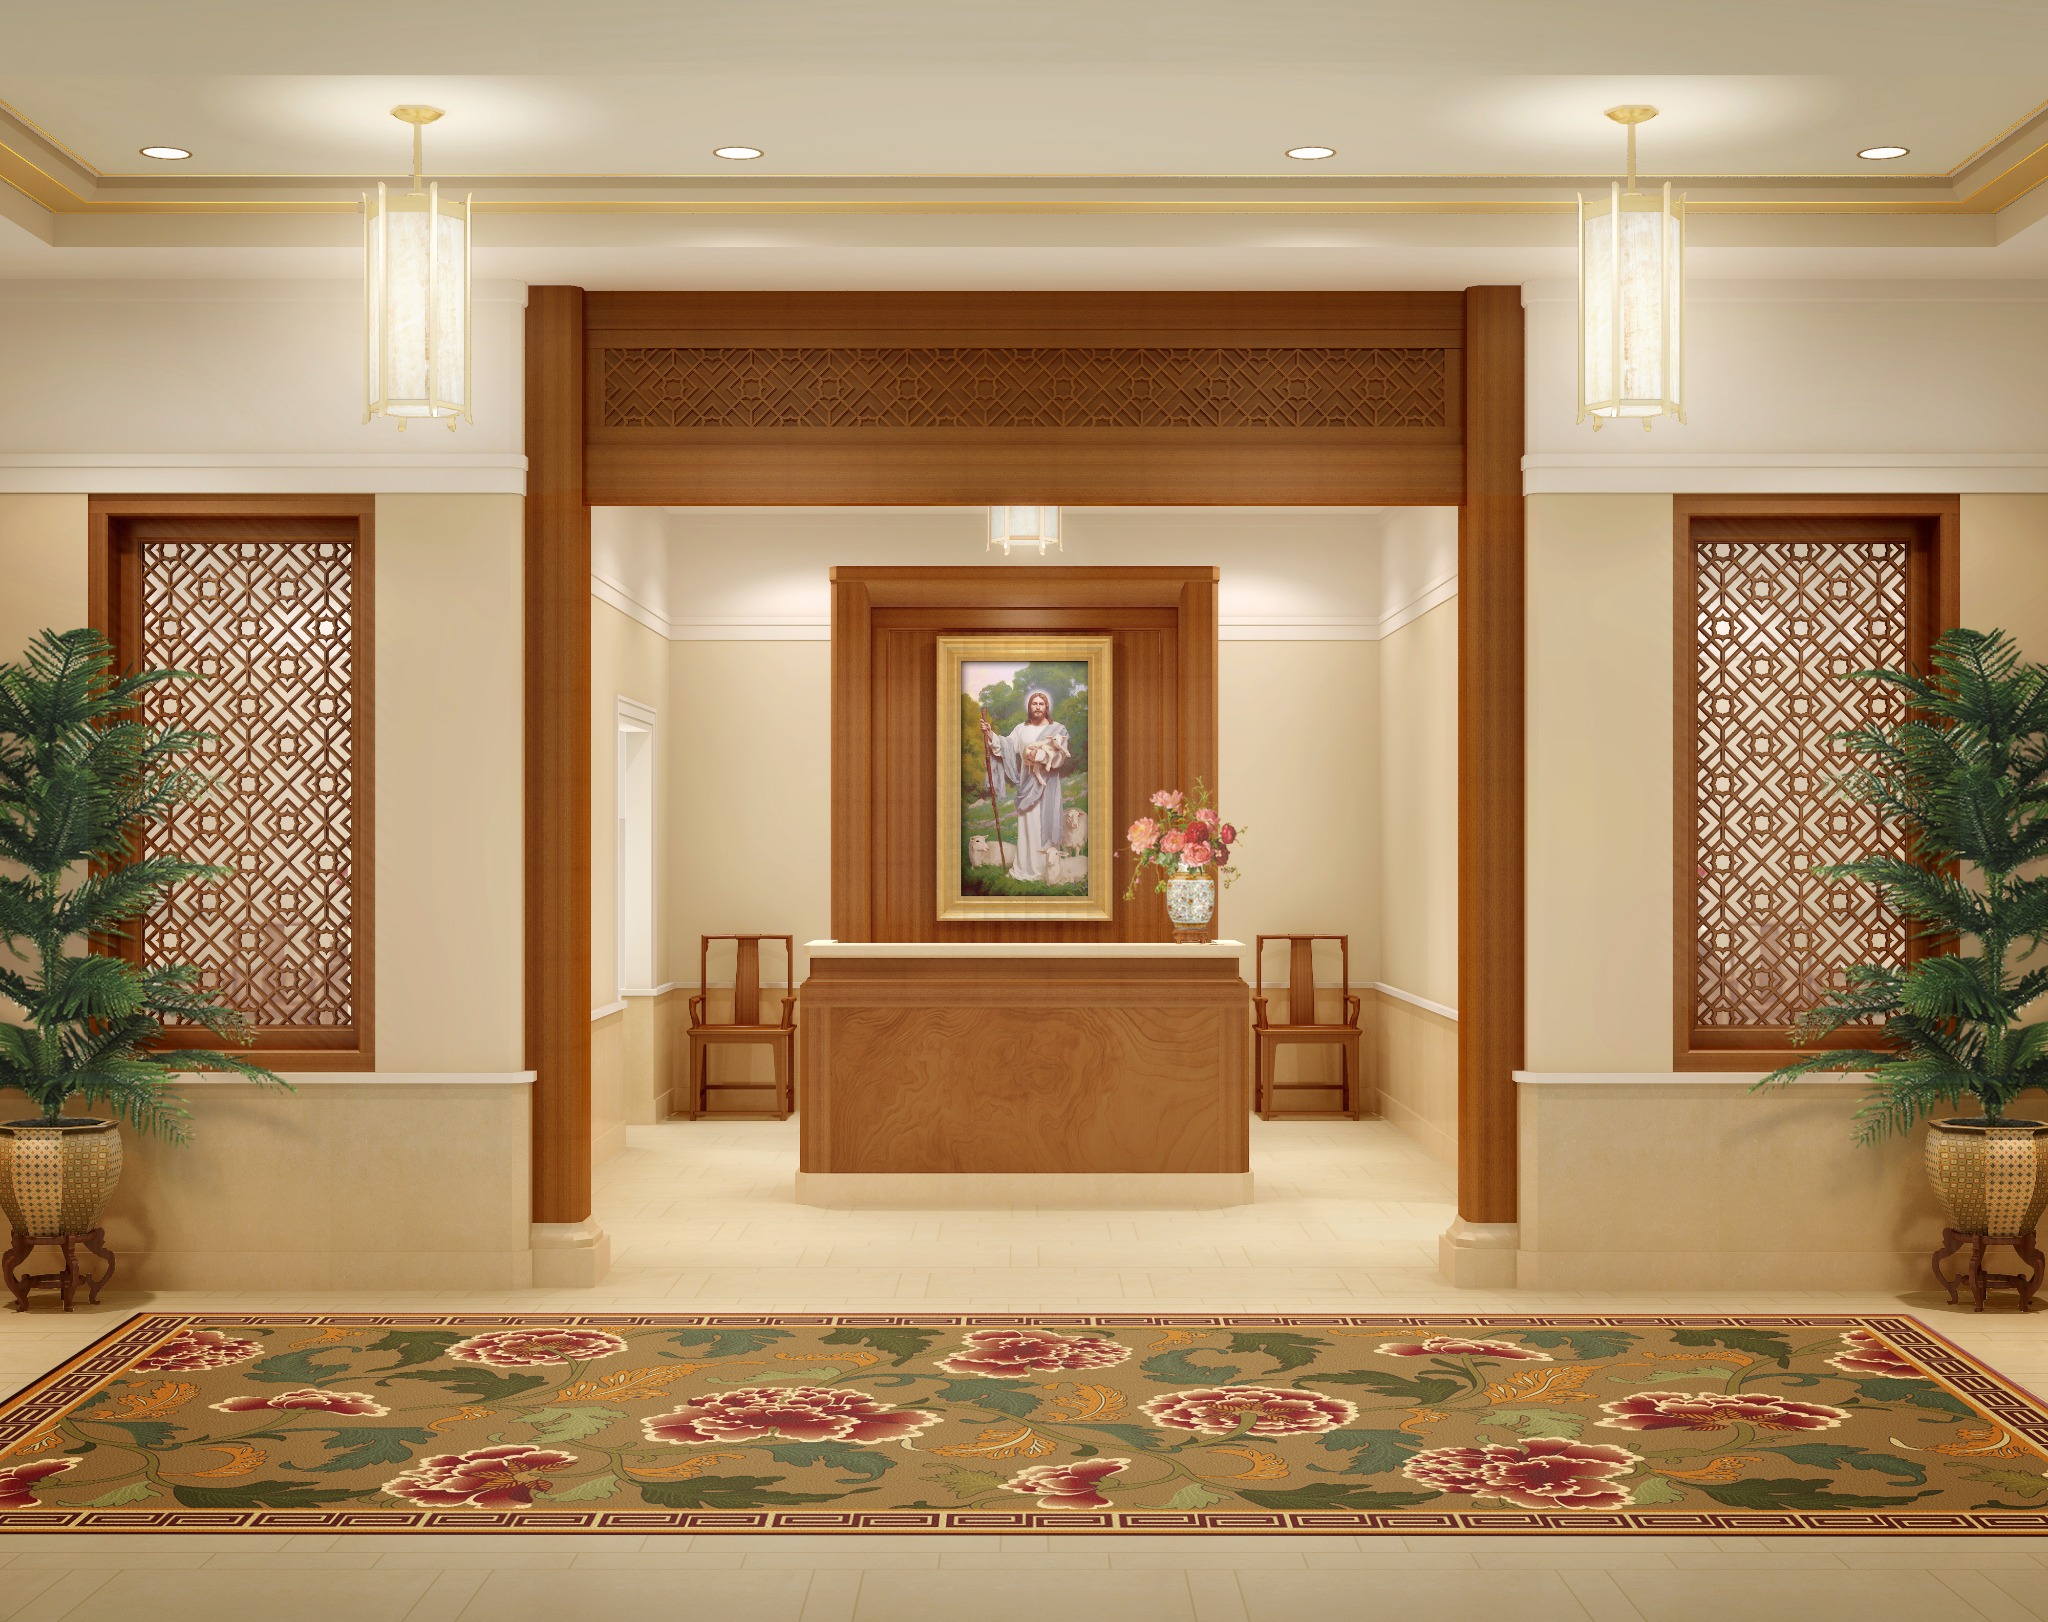 Rendering of the entry into the Hong Kong China Temple.